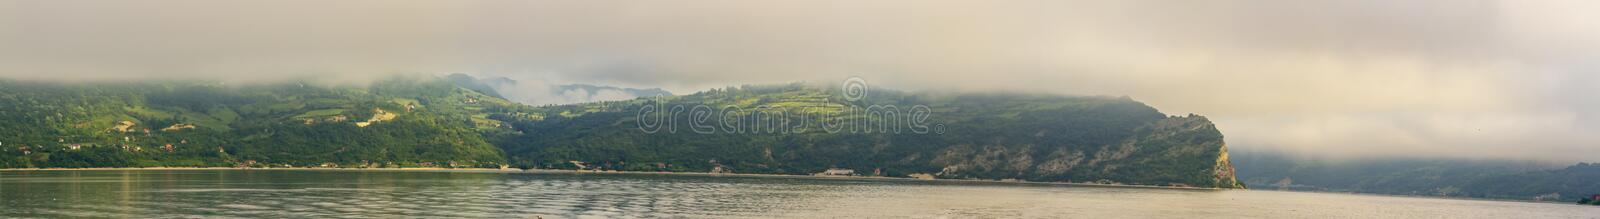 Panorama of landscape in Iron Gate. Panorama of landscape shrouded in fog cruising through the Iron Gate gorges on the Danube River between Serbia and Romania stock photo